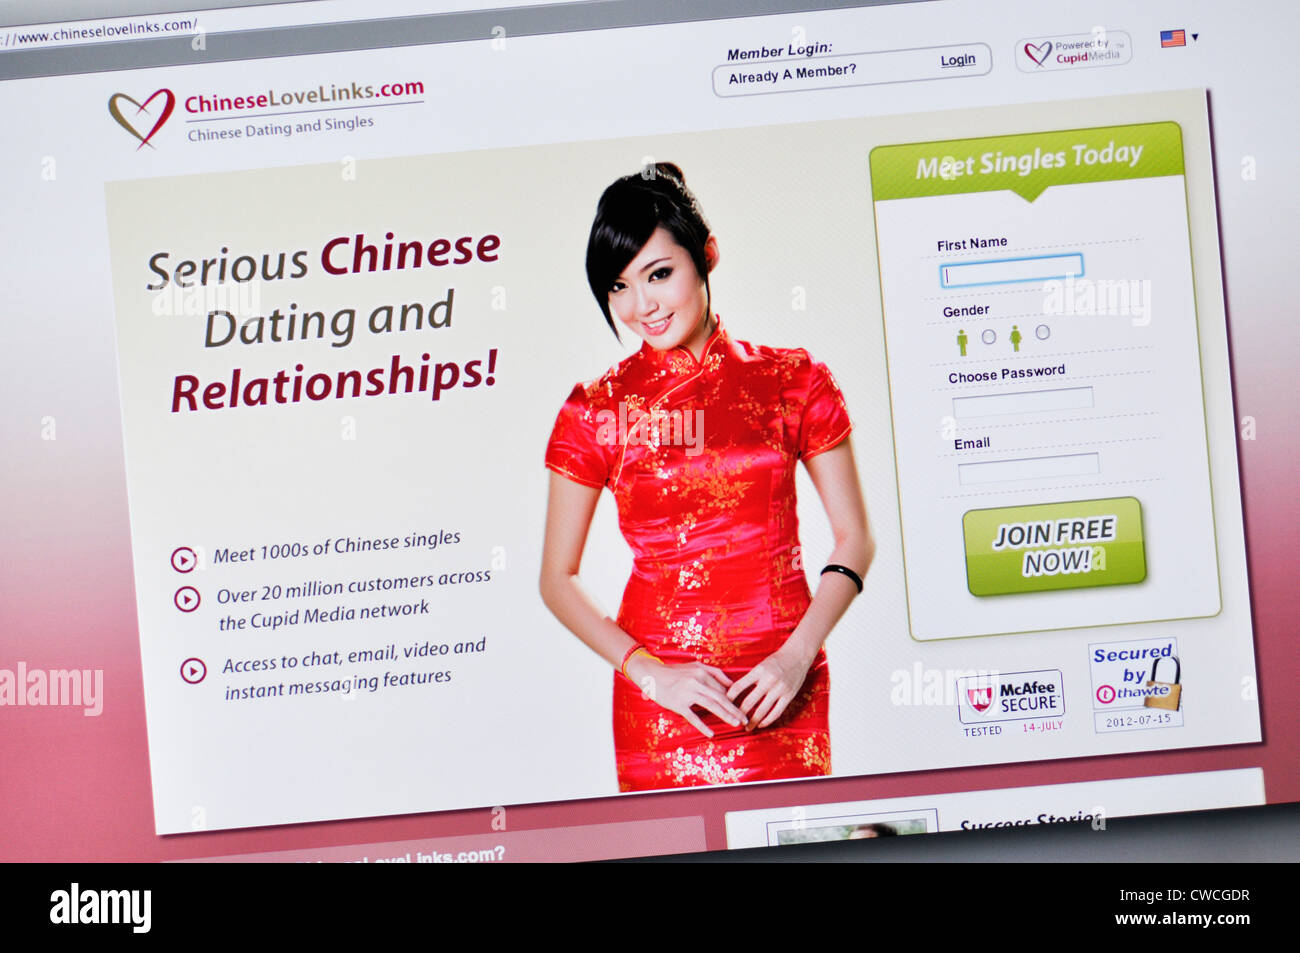 Chinese dating chat site